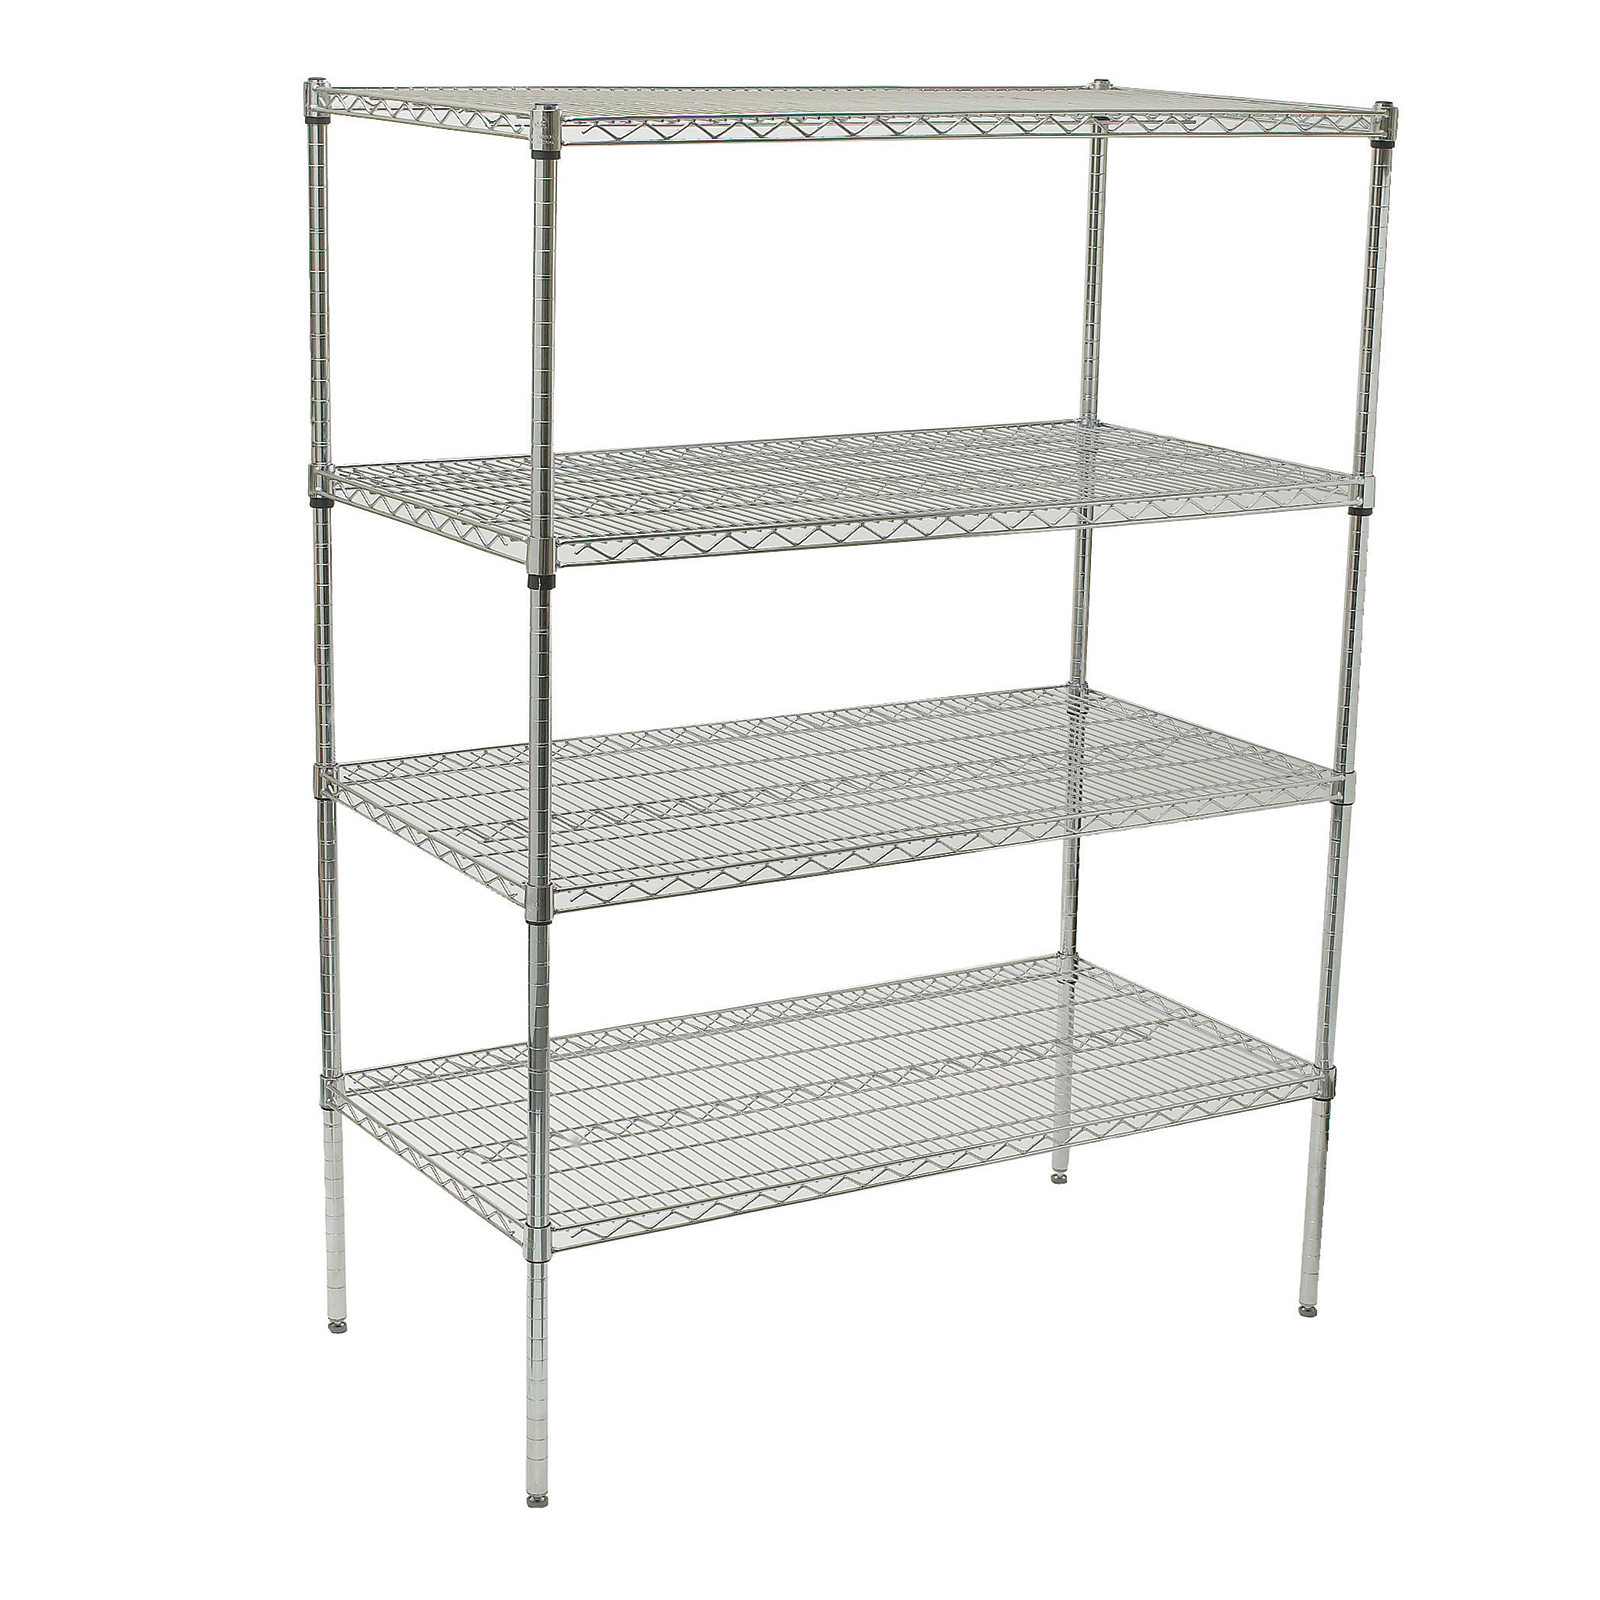 Winco VCS-1836 shelving unit, wire